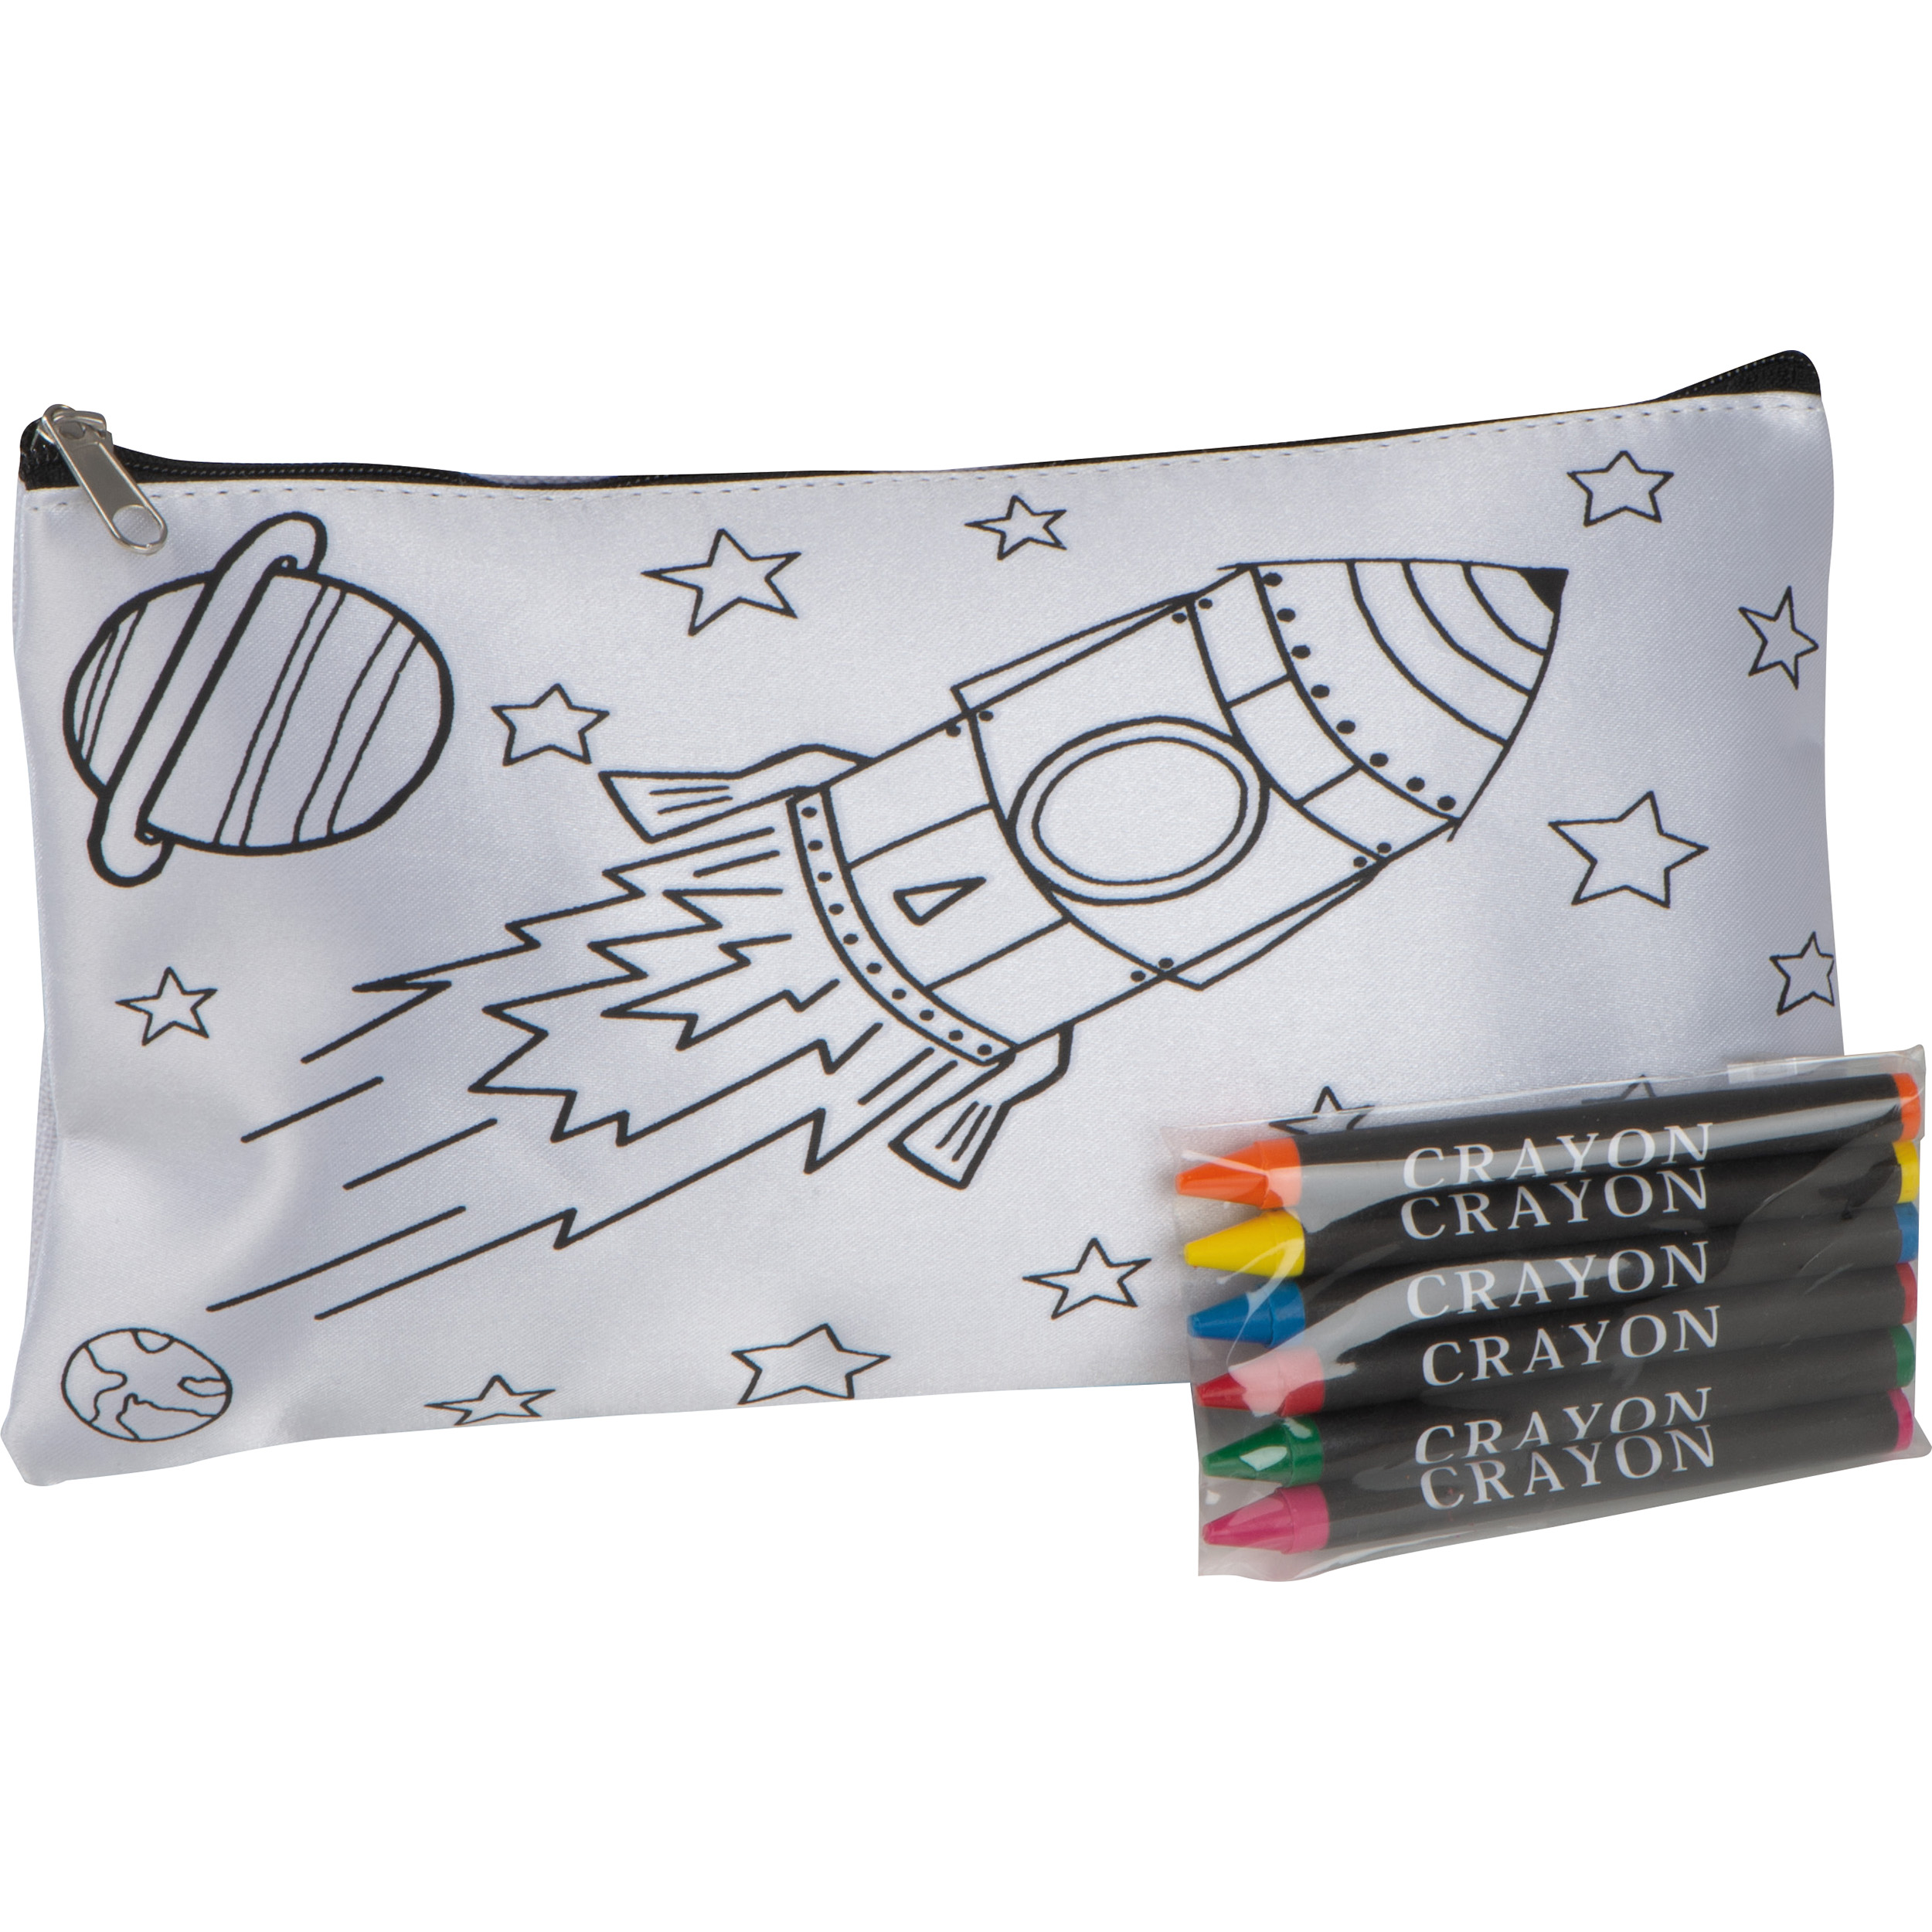 Pencil case for kids